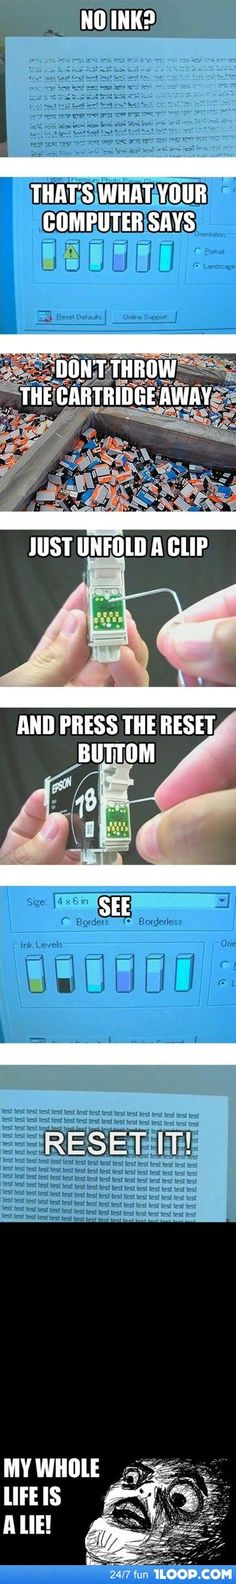 reset ink cartridge, I don't know if this works or not